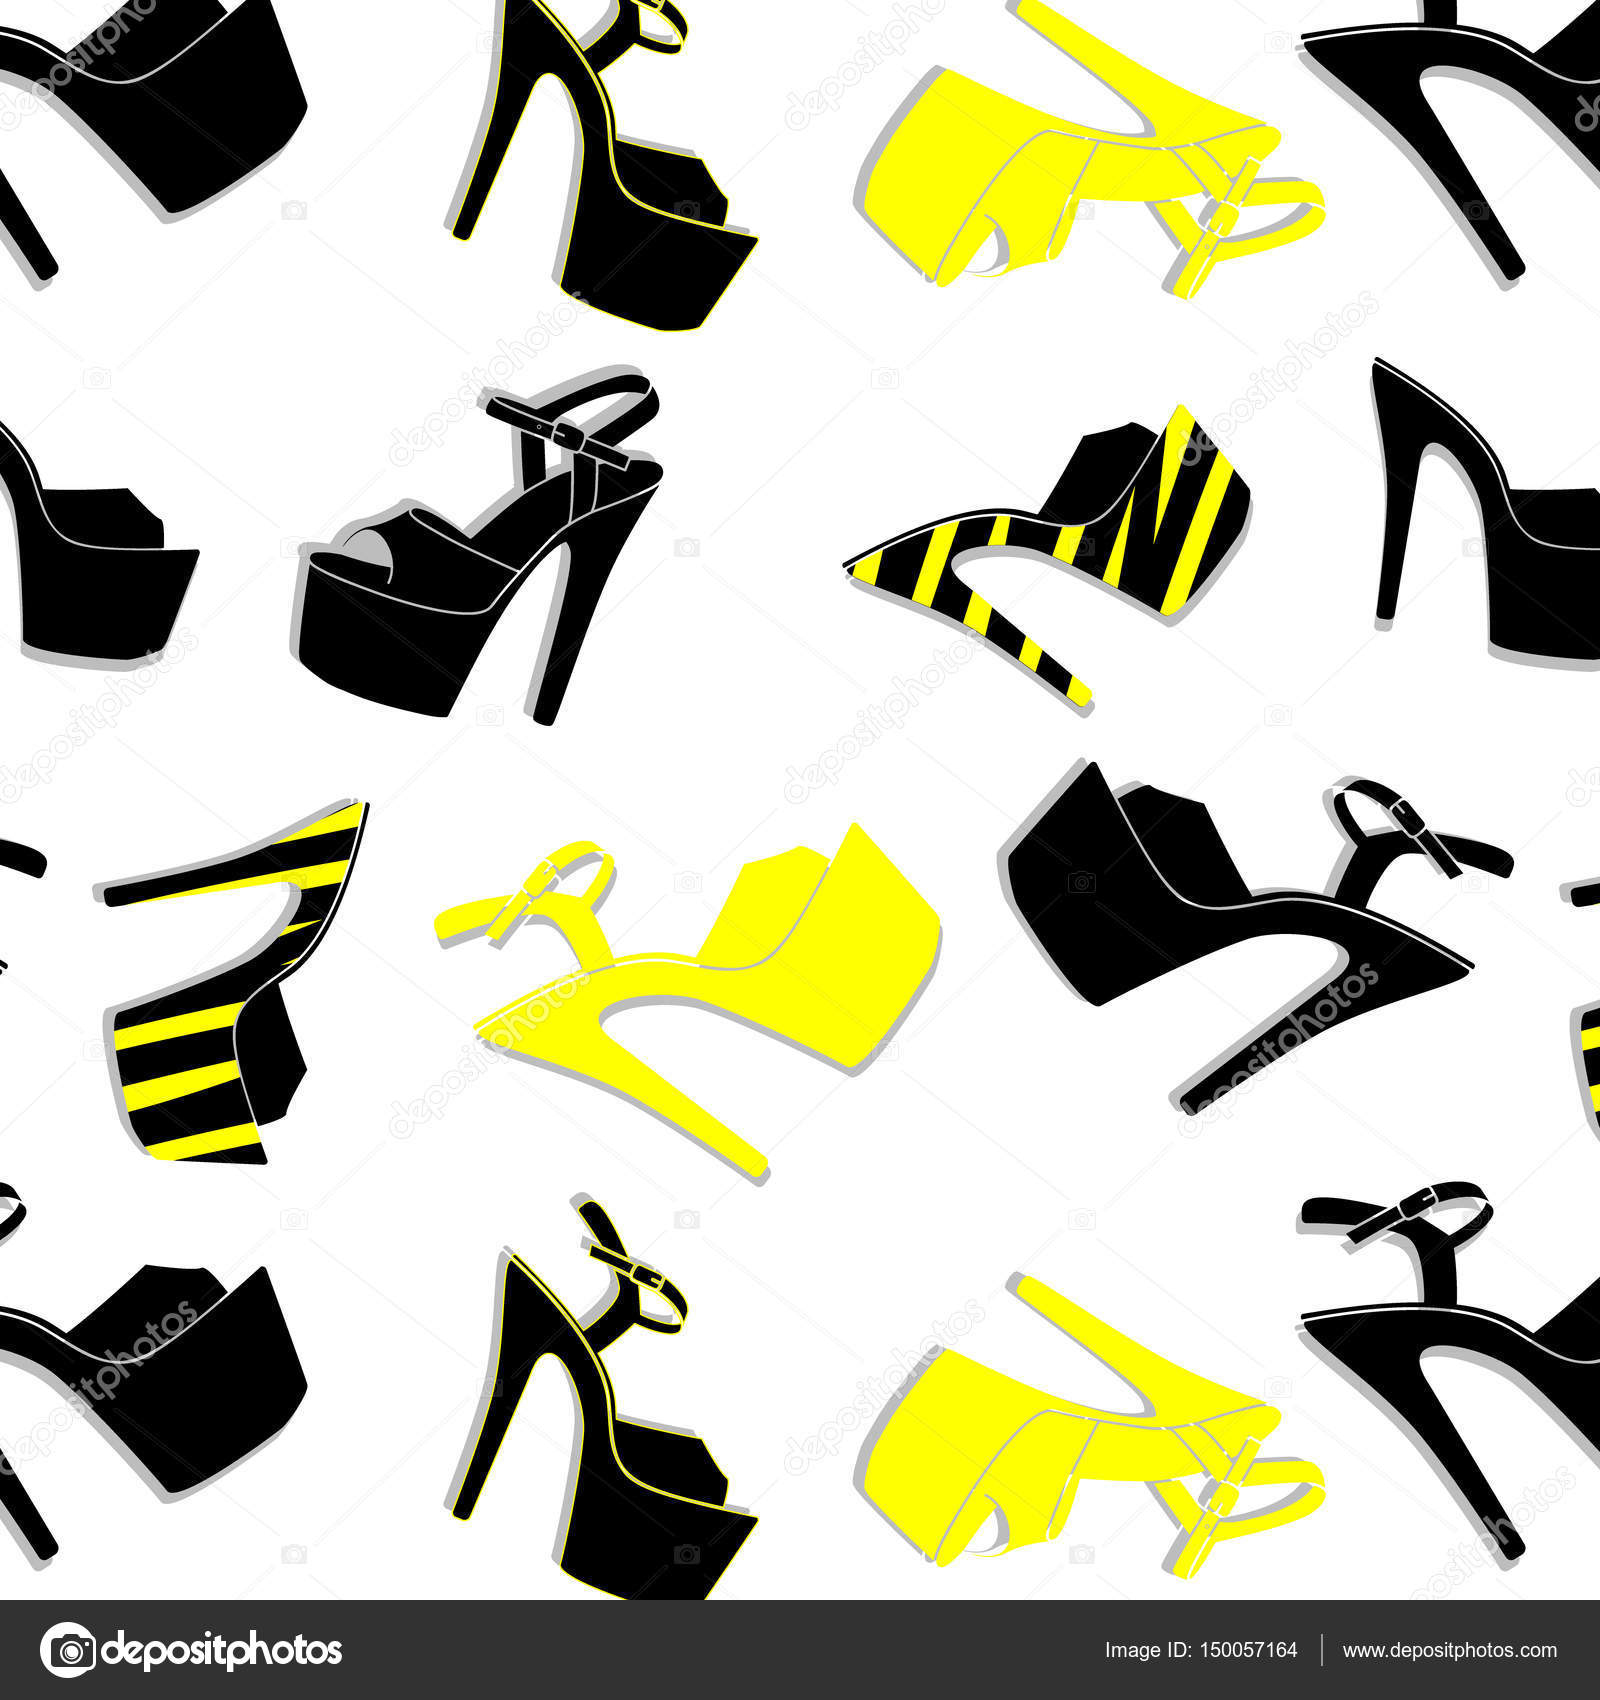 0ce8b2f98857 Vector pole dance sexy shoes. High heels pattern for striptease ...